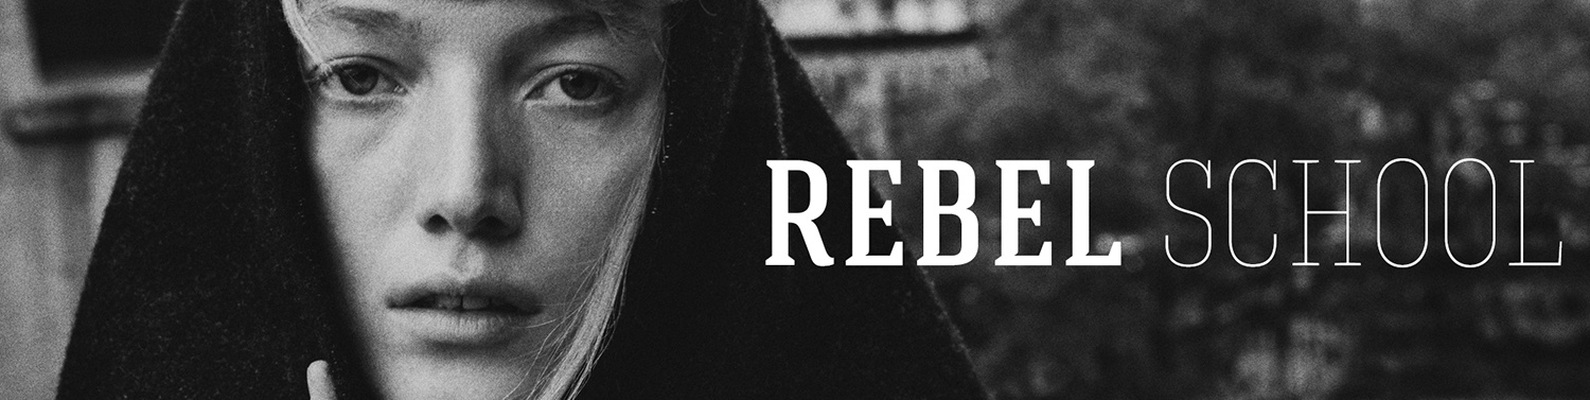 rebel Lyrics to 'rebel rebel' by david bowie you've got your mother in a whirl / she's not sure if you're a boy or a girl / hey babe, your hair's alright / hey babe.